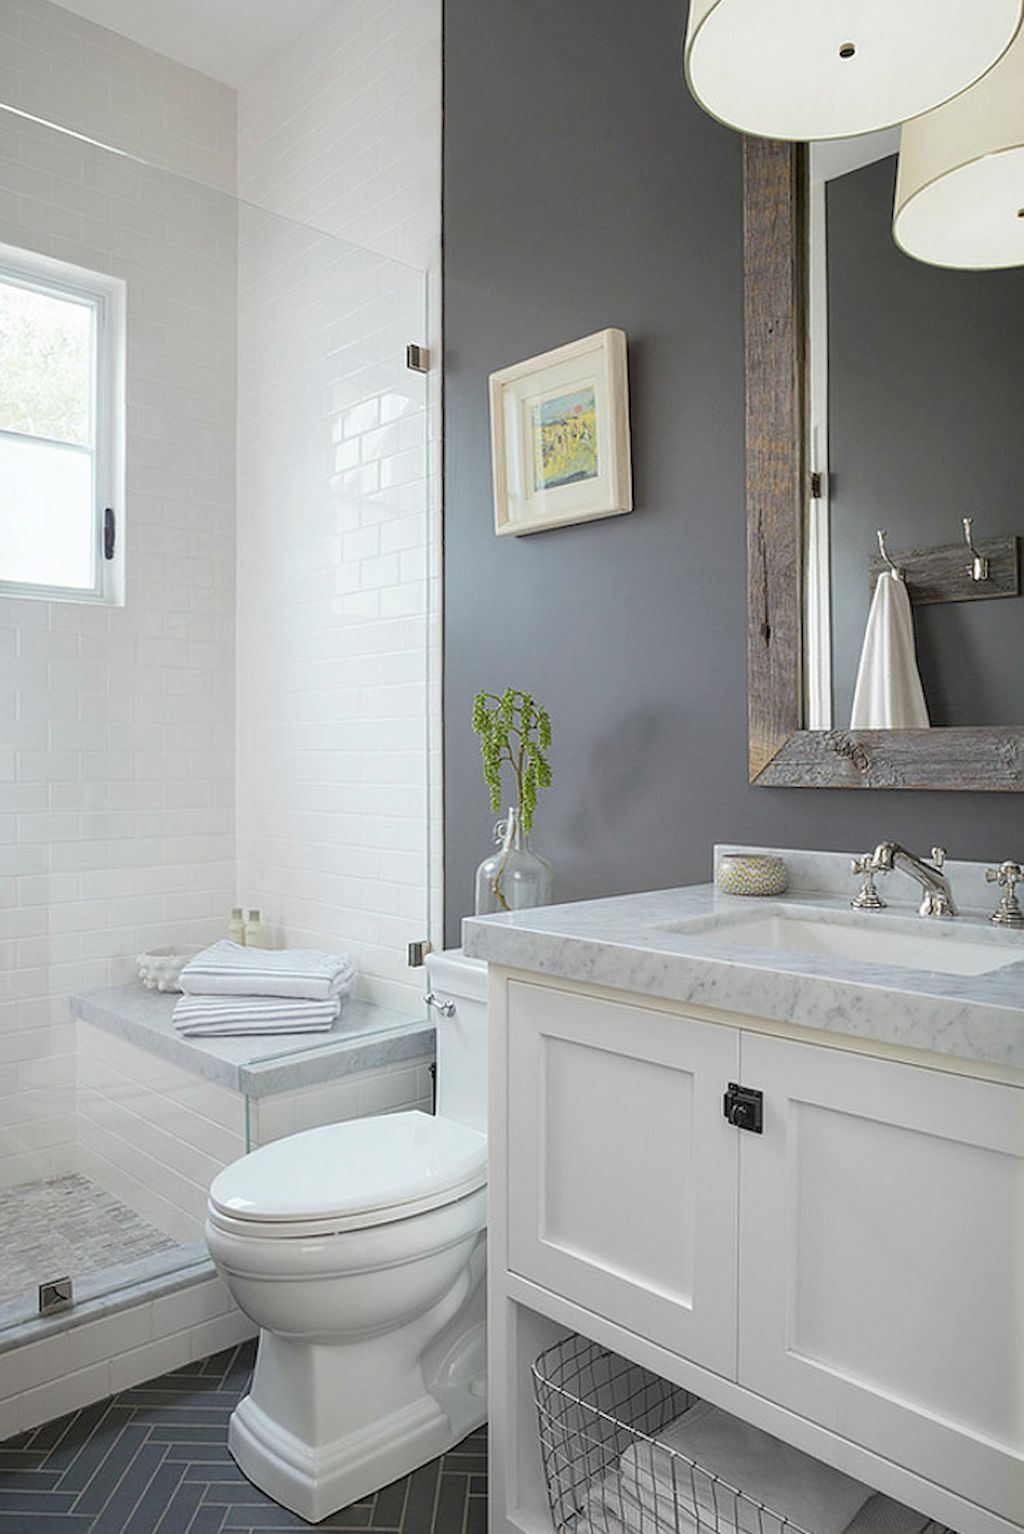 Adorable 55 Cool Small Master Bathroom Remodel Ideas  Https://homeastern.com/2017/06/23/55 Cool Small Master Bathroom Remodel  Ideas/